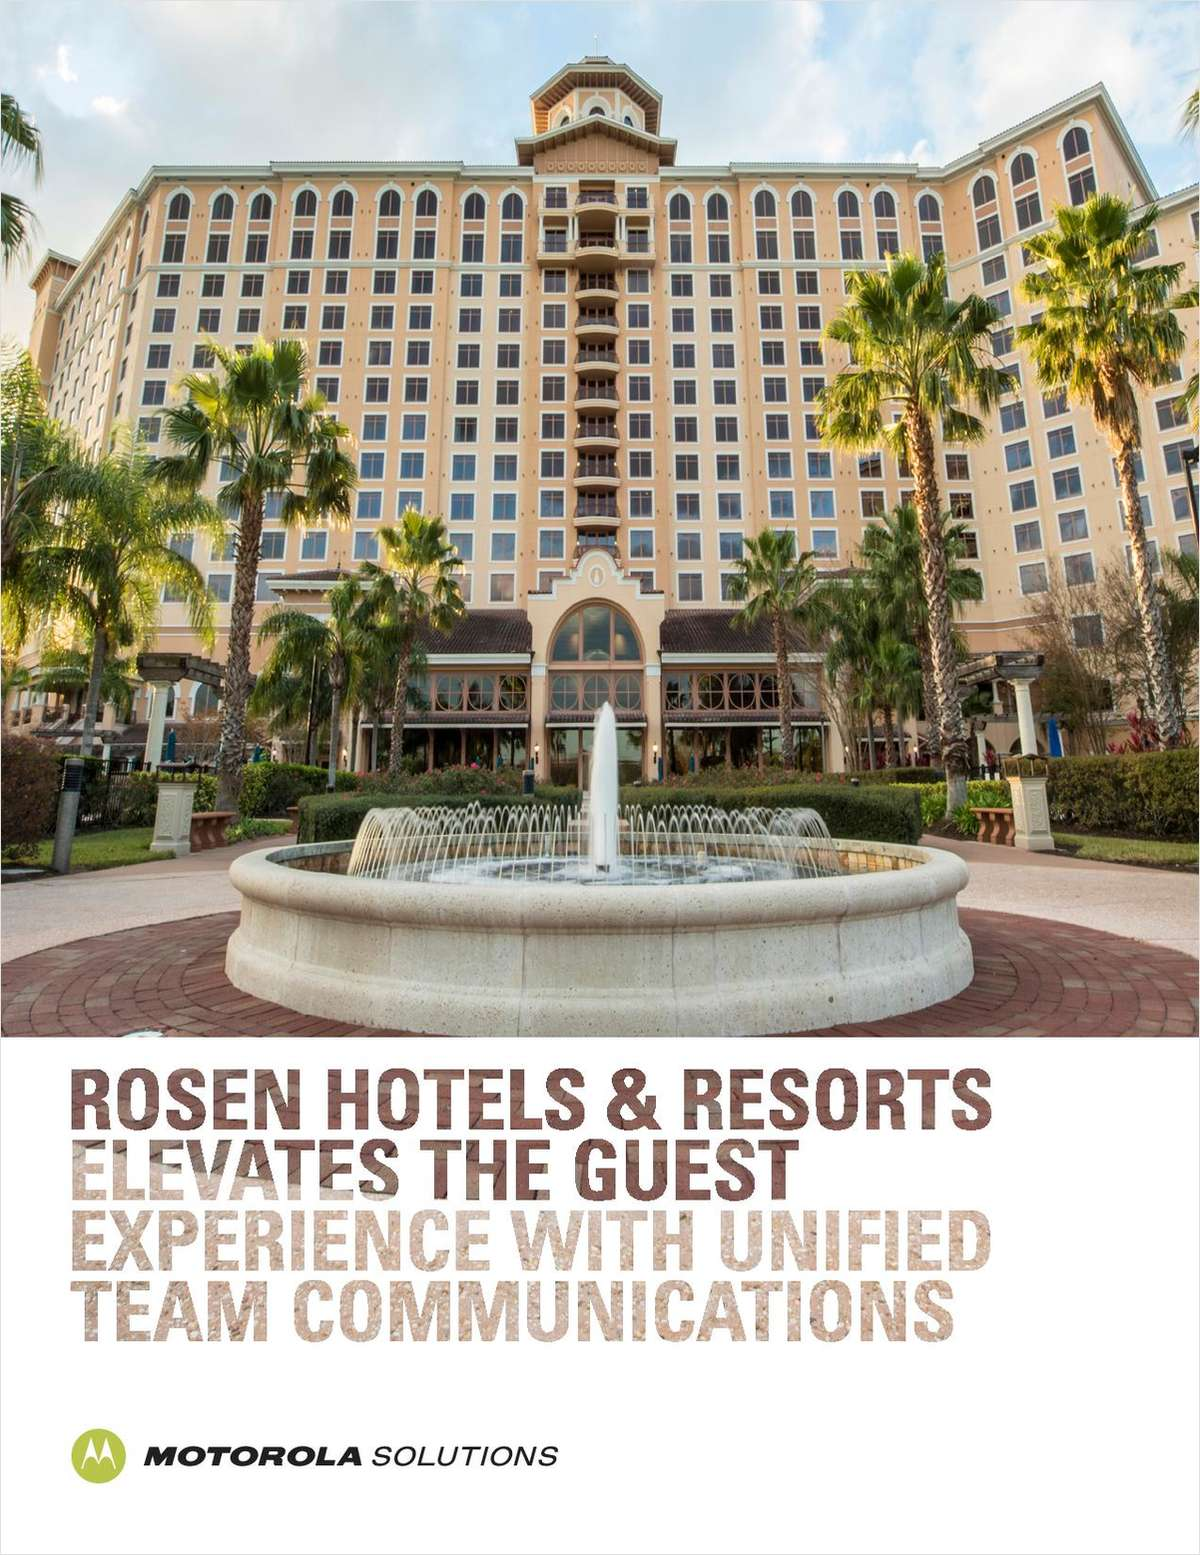 Rosen Hotels & Resorts Case Study: Delivering Top-notch Guest Services Through Advanced Communications Technology